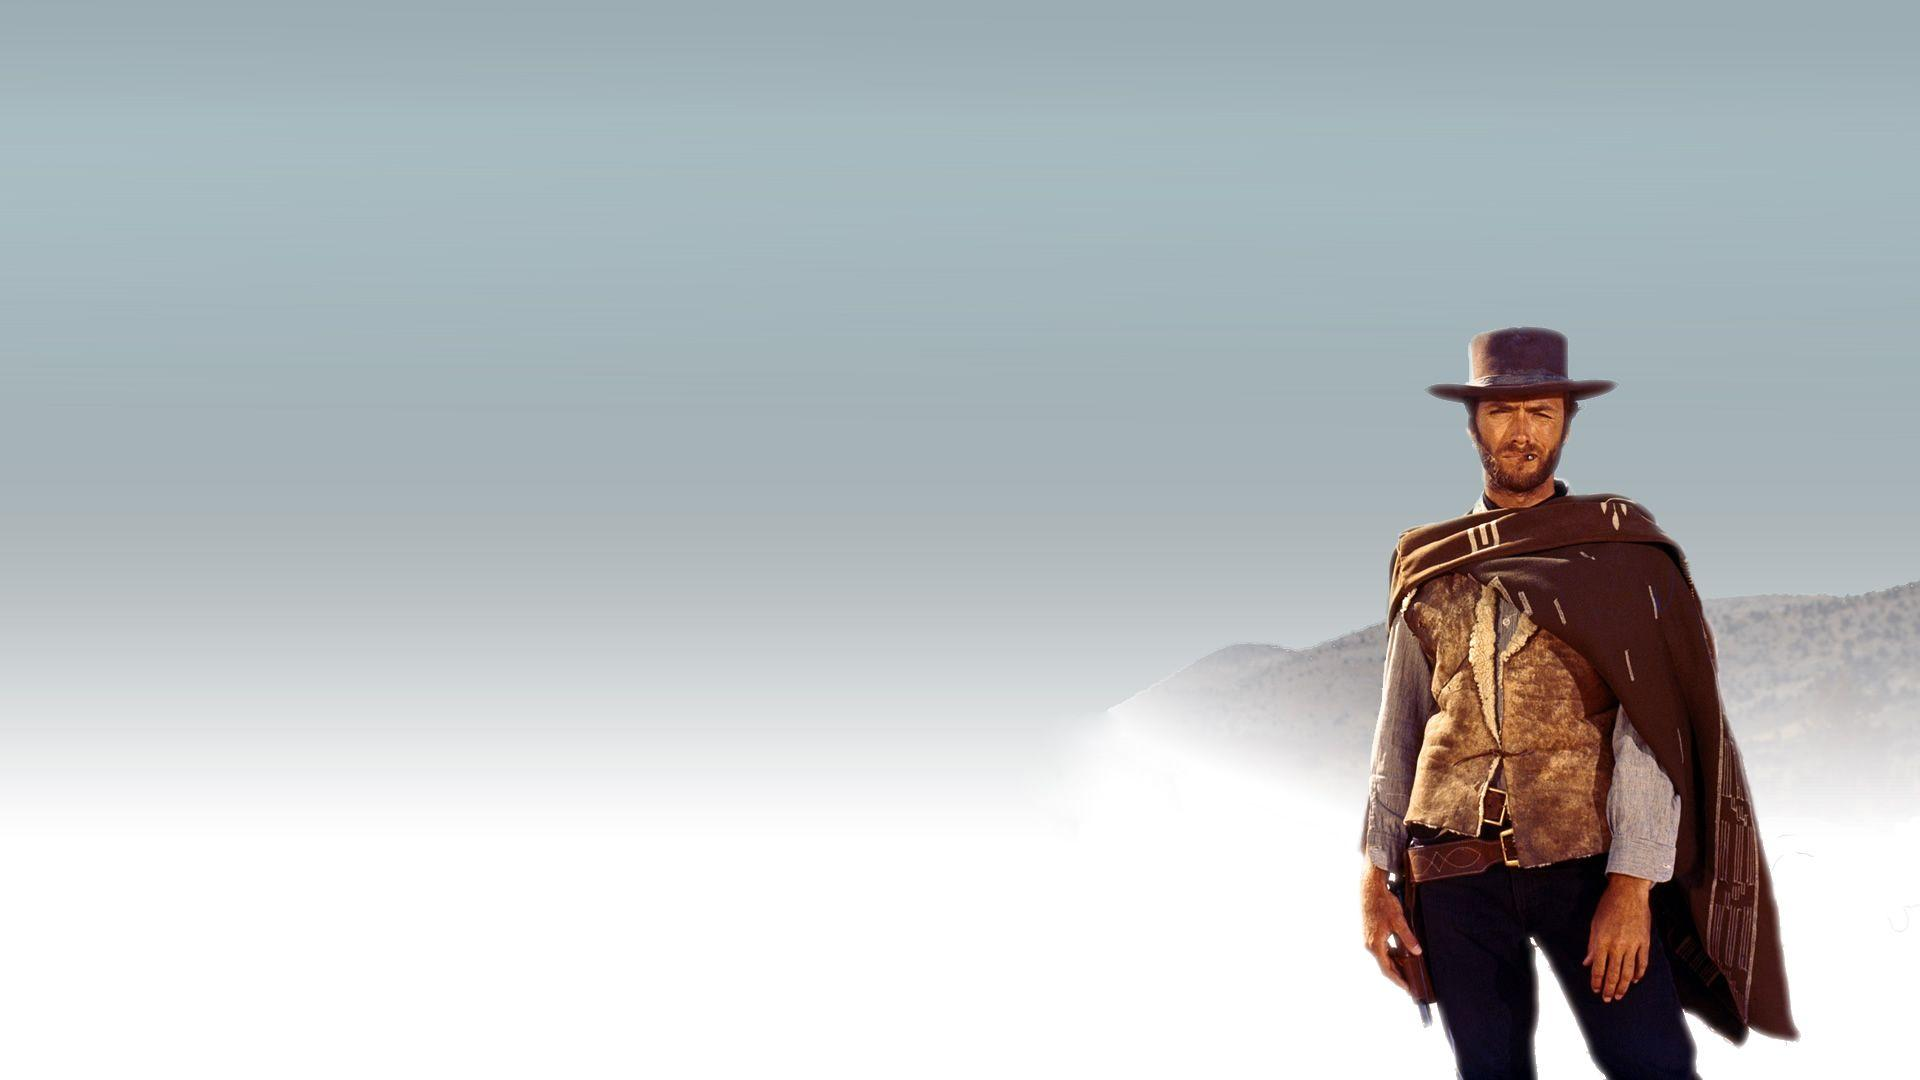 Clint Eastwood Cowboy Wallpaper: Western Wallpapers